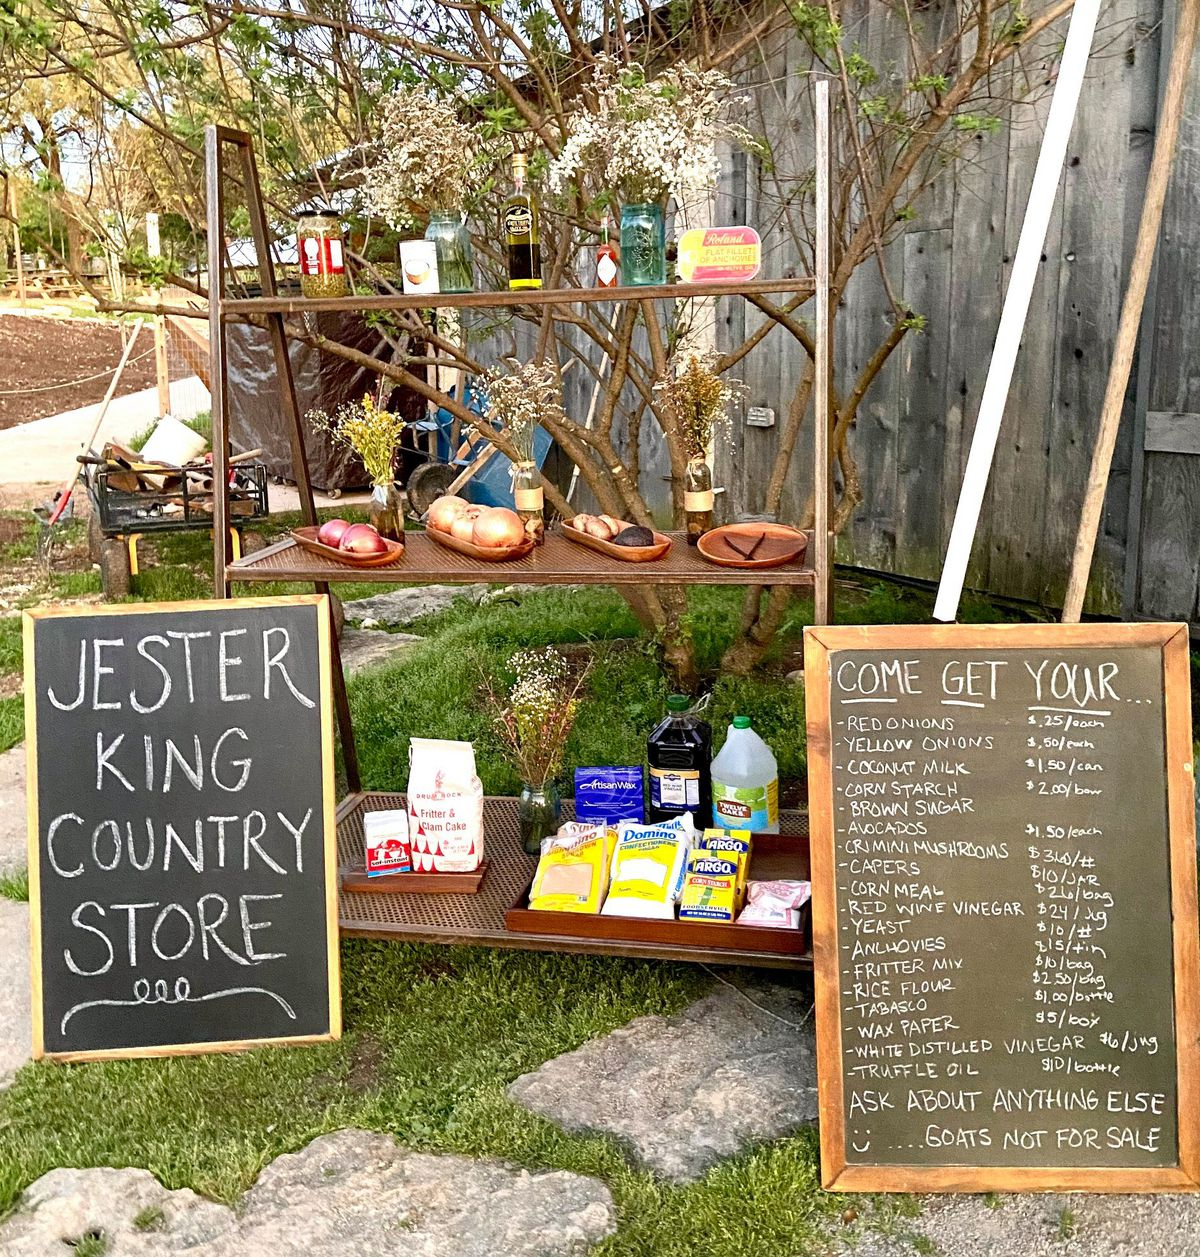 Jester King's Country Store